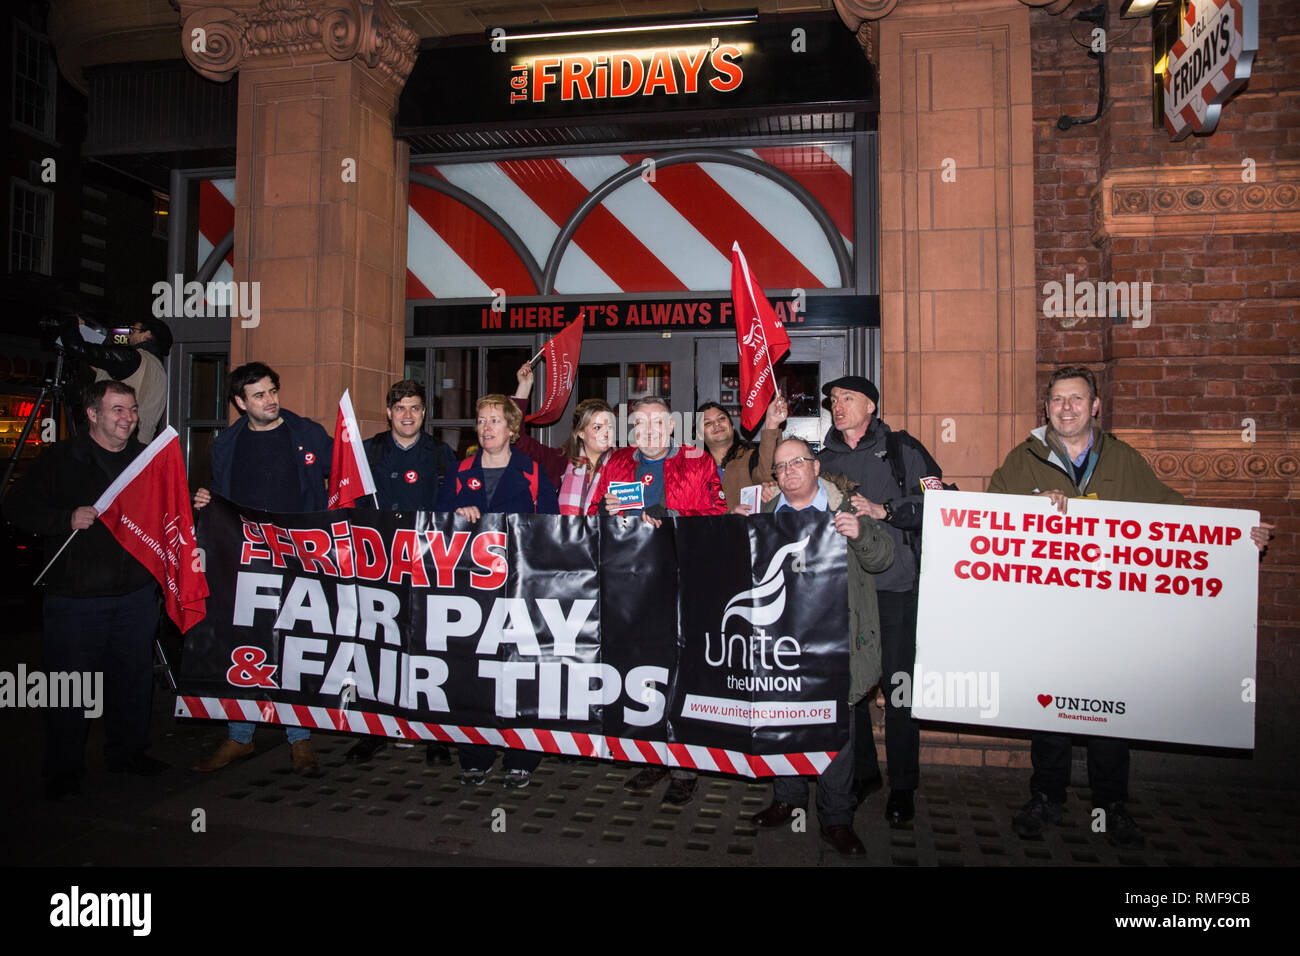 London, UK. 14th February, 2019. Members and supporters of the Restaurant, Catering and Bar Workers Branch of Unite the Union mark the first anniversary of a strike - since ended - for fair tips and fair pay by TGI Fridays workers outside a branch of the chain in Covent Garden. Unite plan to call on HMRC next week to conduct two investigations into the conduct of TGI Fridays, one regarding their Tronc scheme for tips and the other regarding minimum wage issues. Credit: Mark Kerrison/Alamy Live News - Stock Image